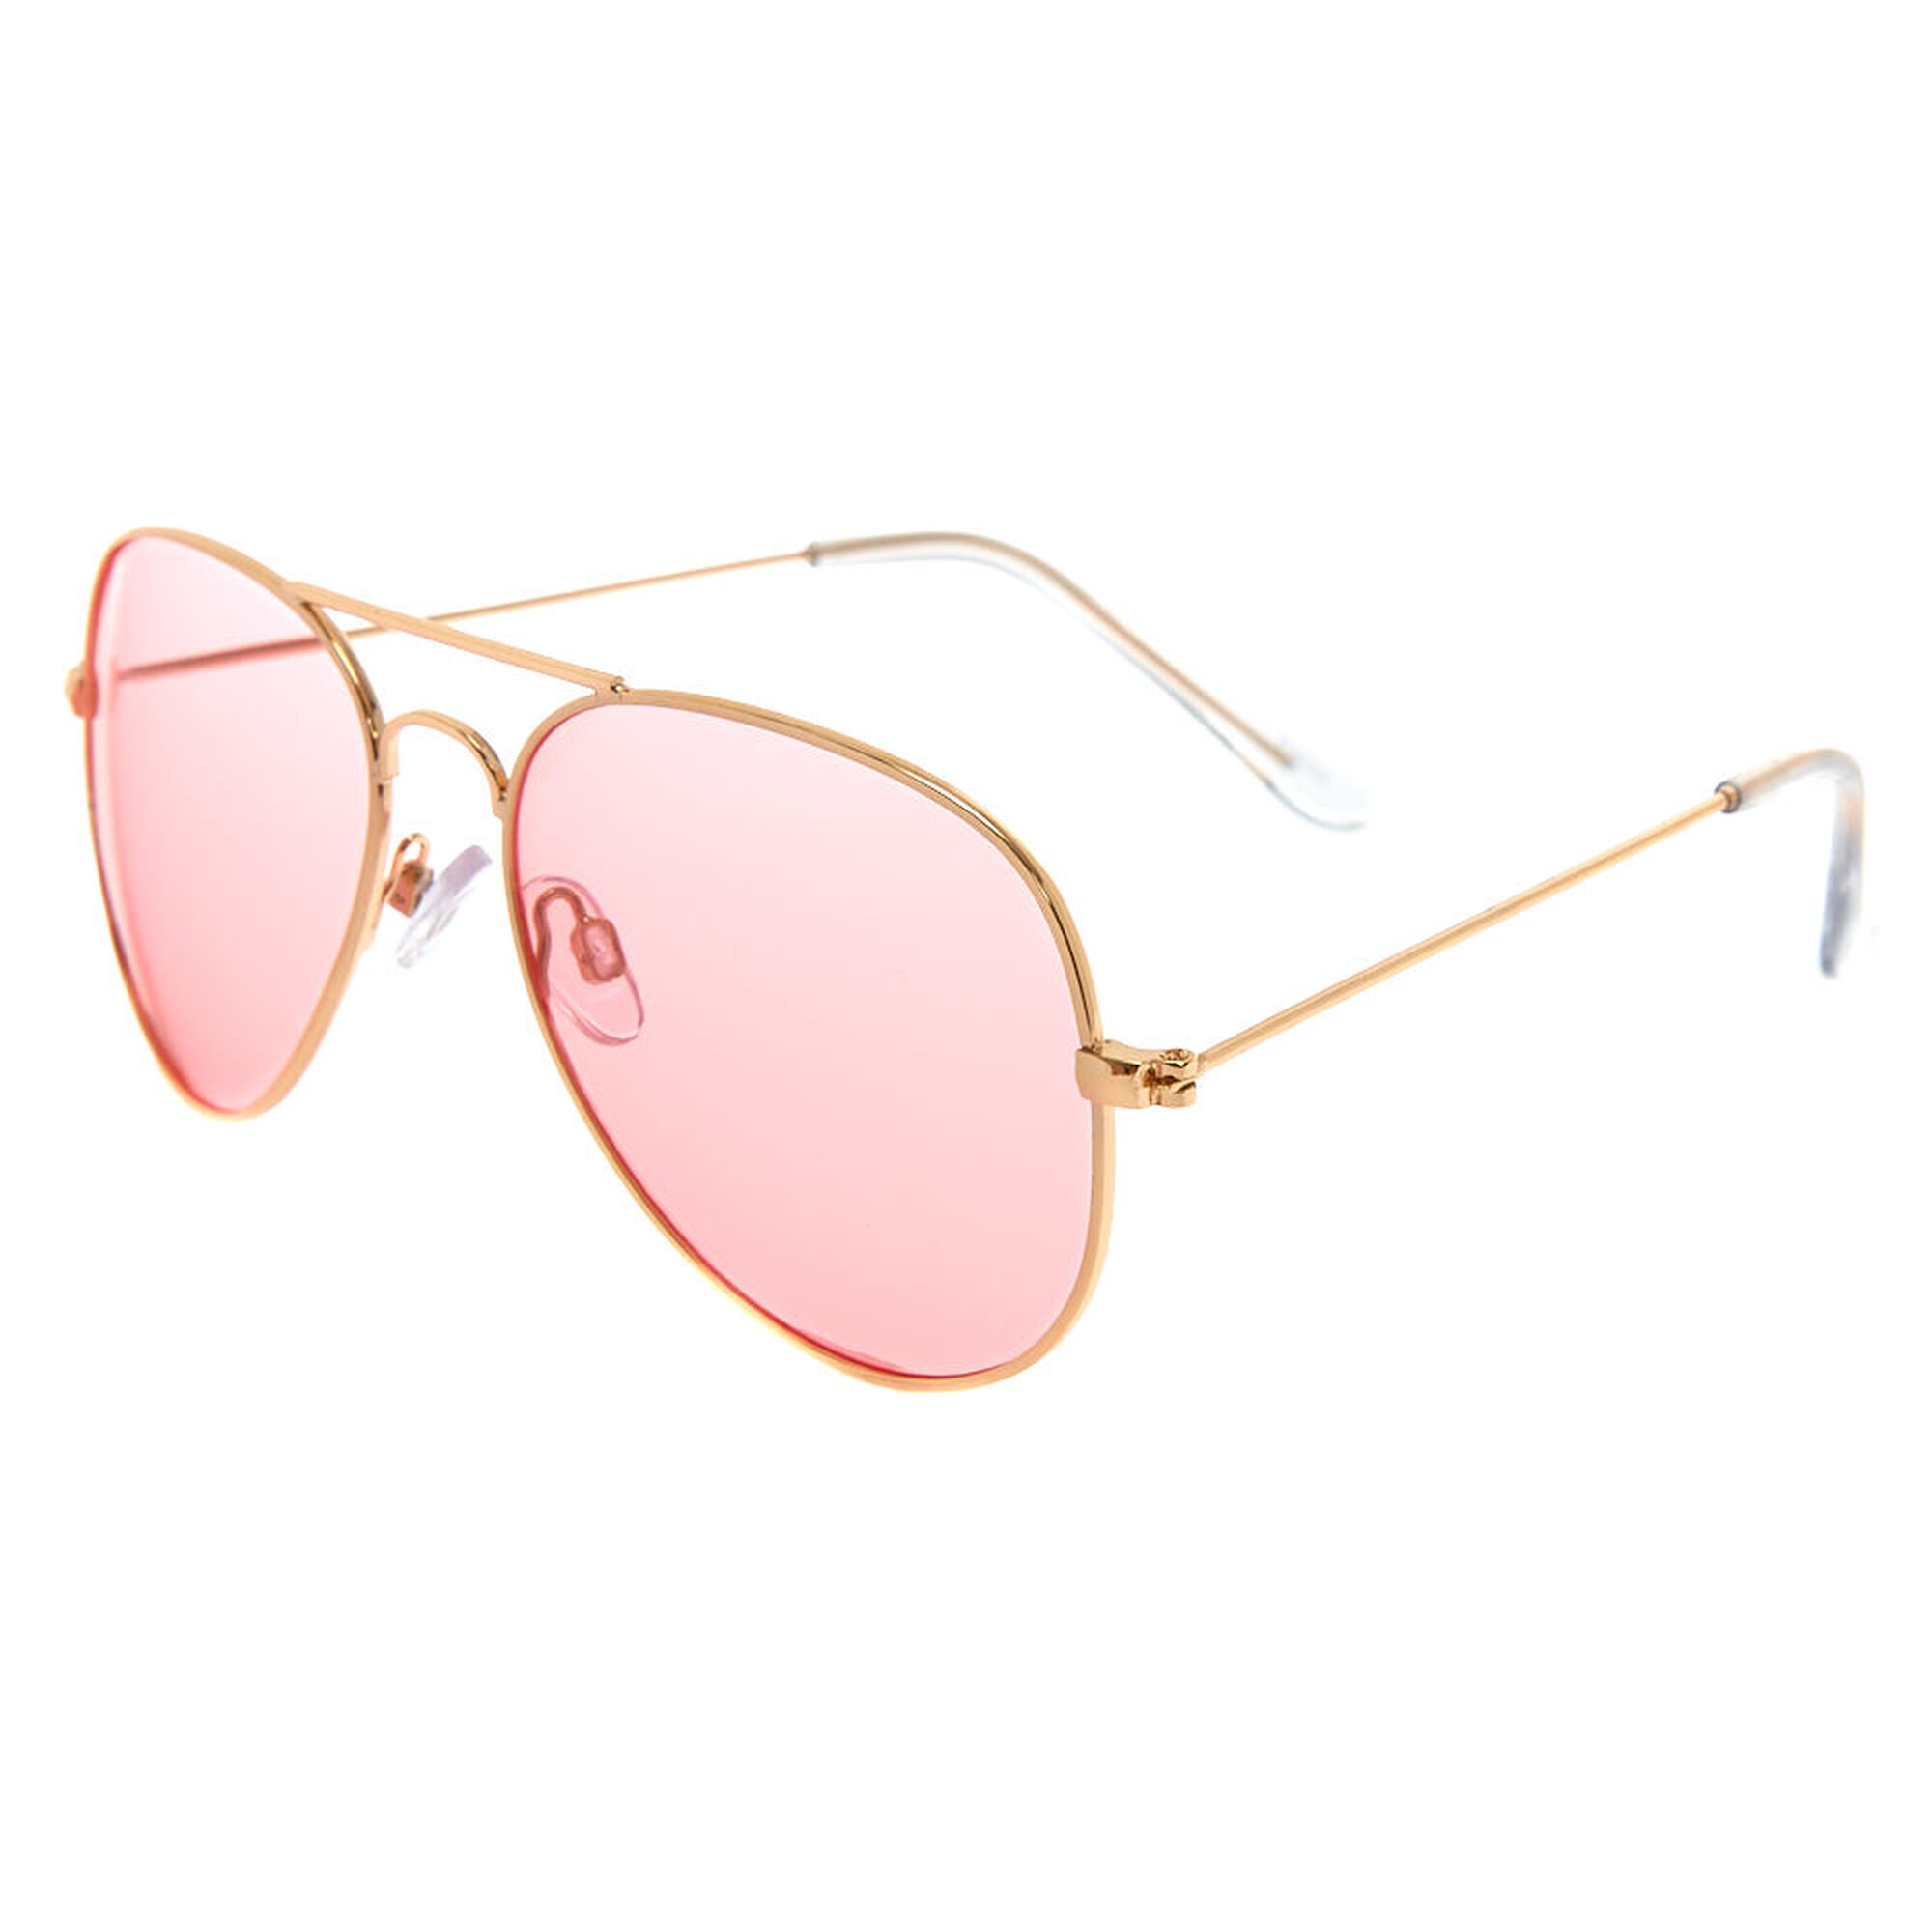 a195148af61 Pink Tinted Aviator Sunglasses - Gold